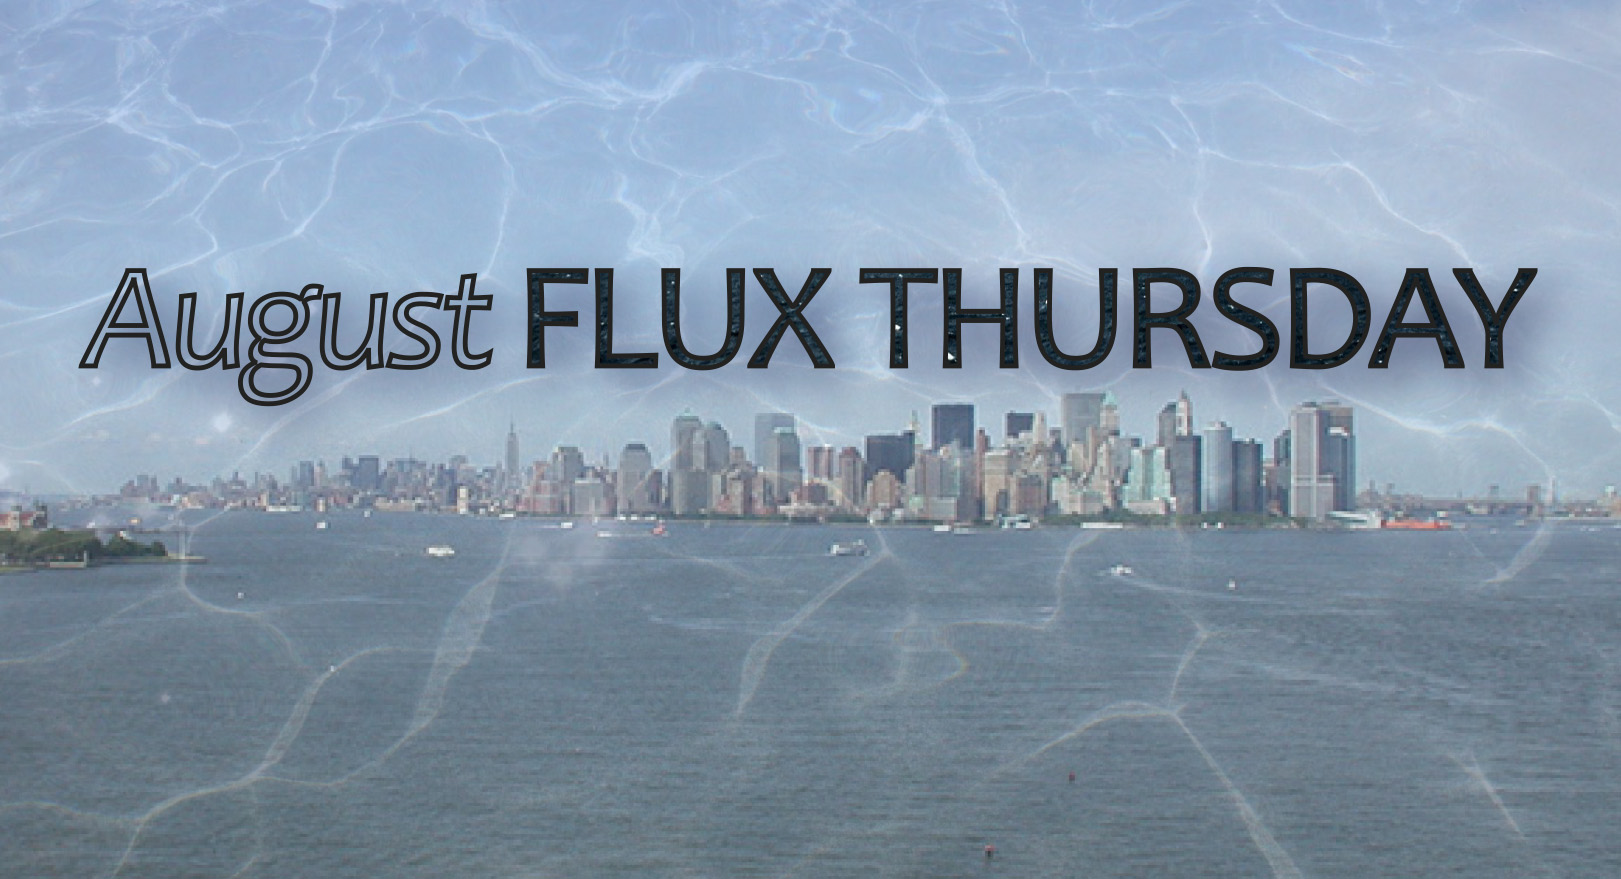 August Flux Thursday